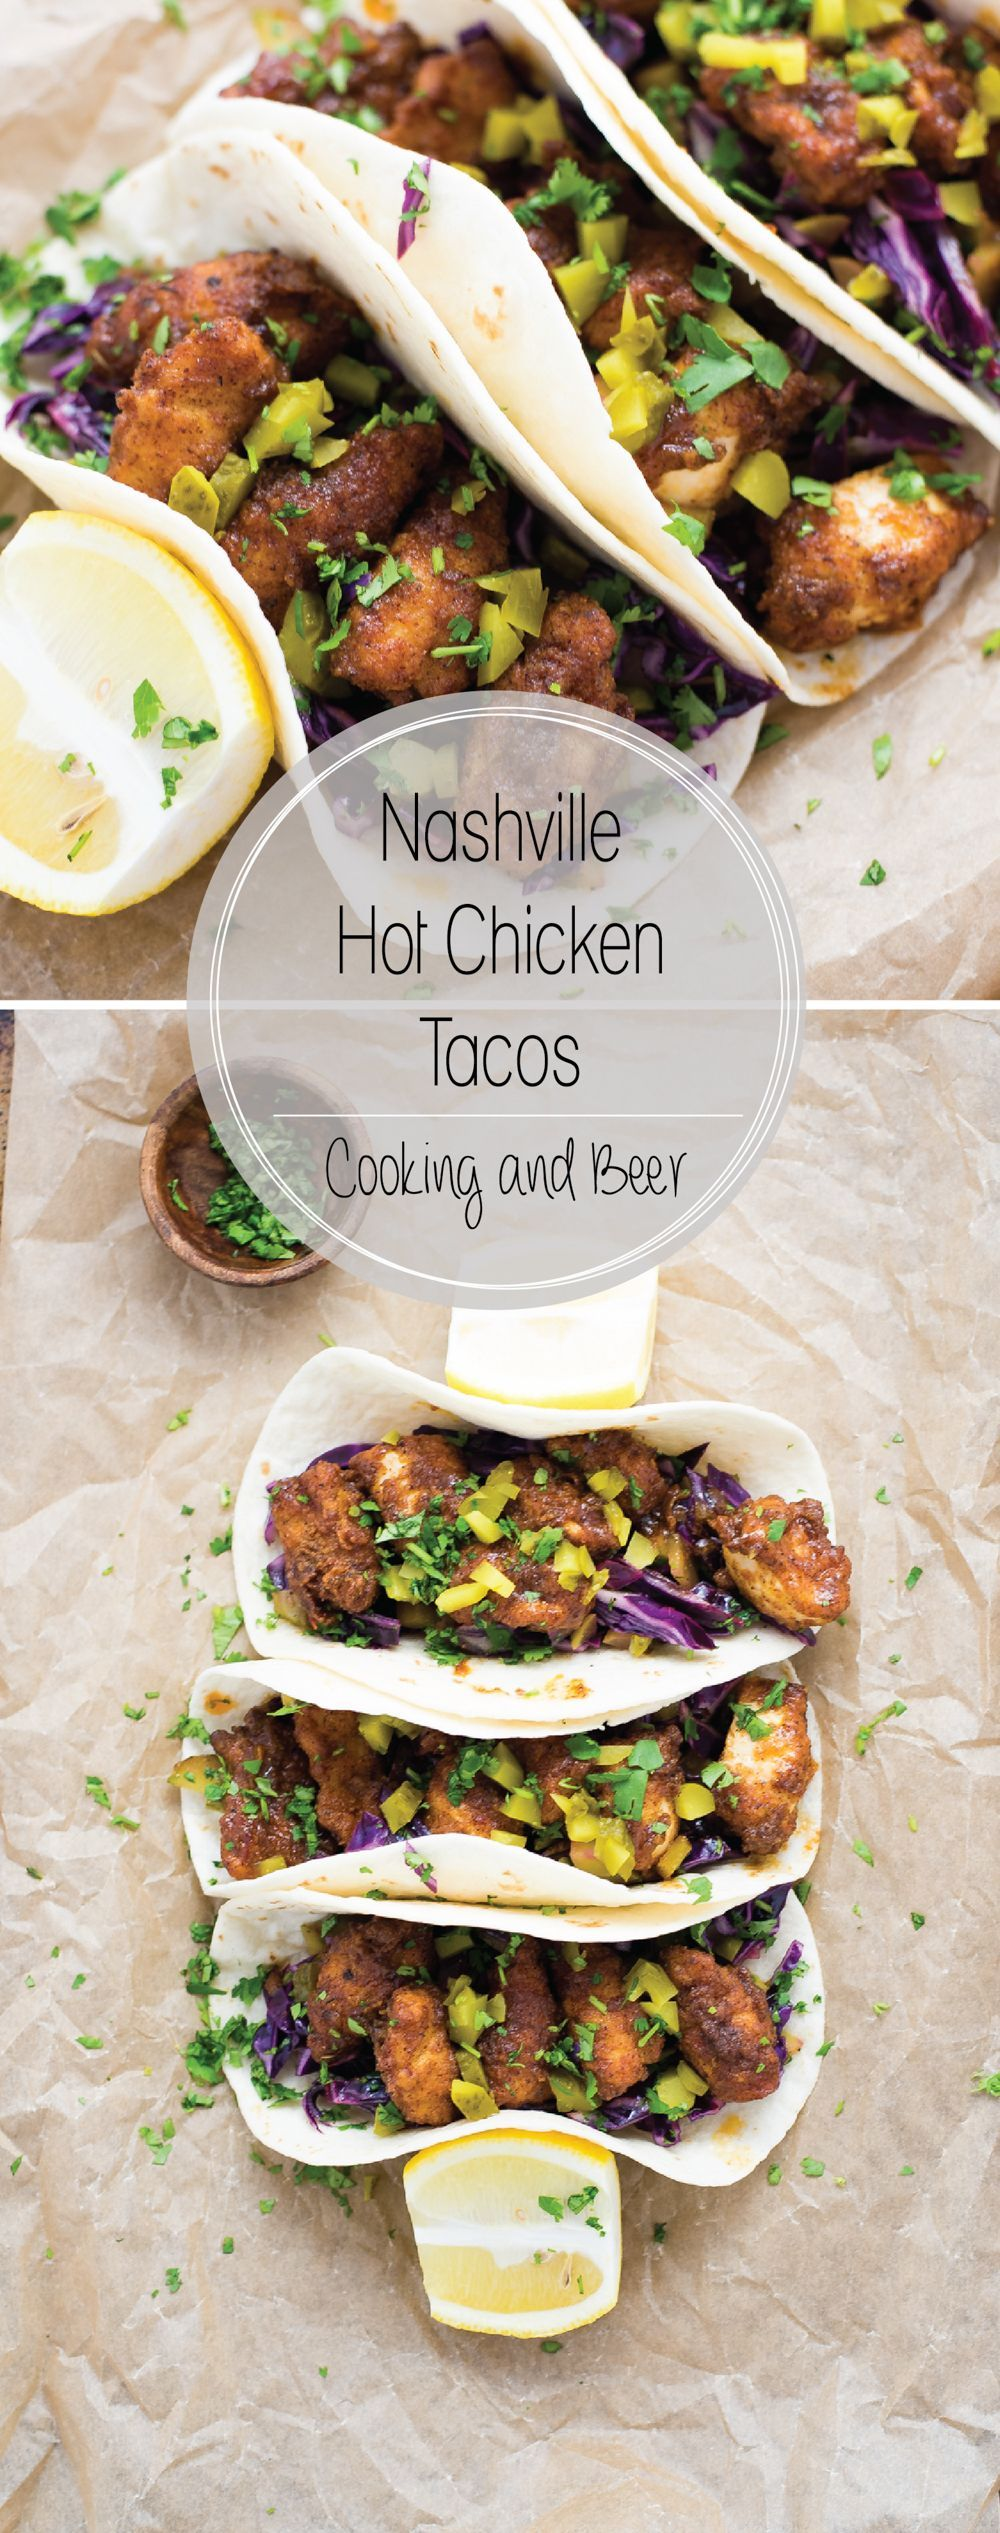 Hot Chicken Tacos with Dill Pickle Slaw Nashville Hot Chicken Tacos with Dill Pickle Slaw are a fun twist on traditional Nashville Hot Chicken: a spicy, fried chicken dish!Nashville Hot Chicken Tacos with Dill Pickle Slaw are a fun twist on traditional Nashville Hot Chicken: a spicy, fried chicken dish!